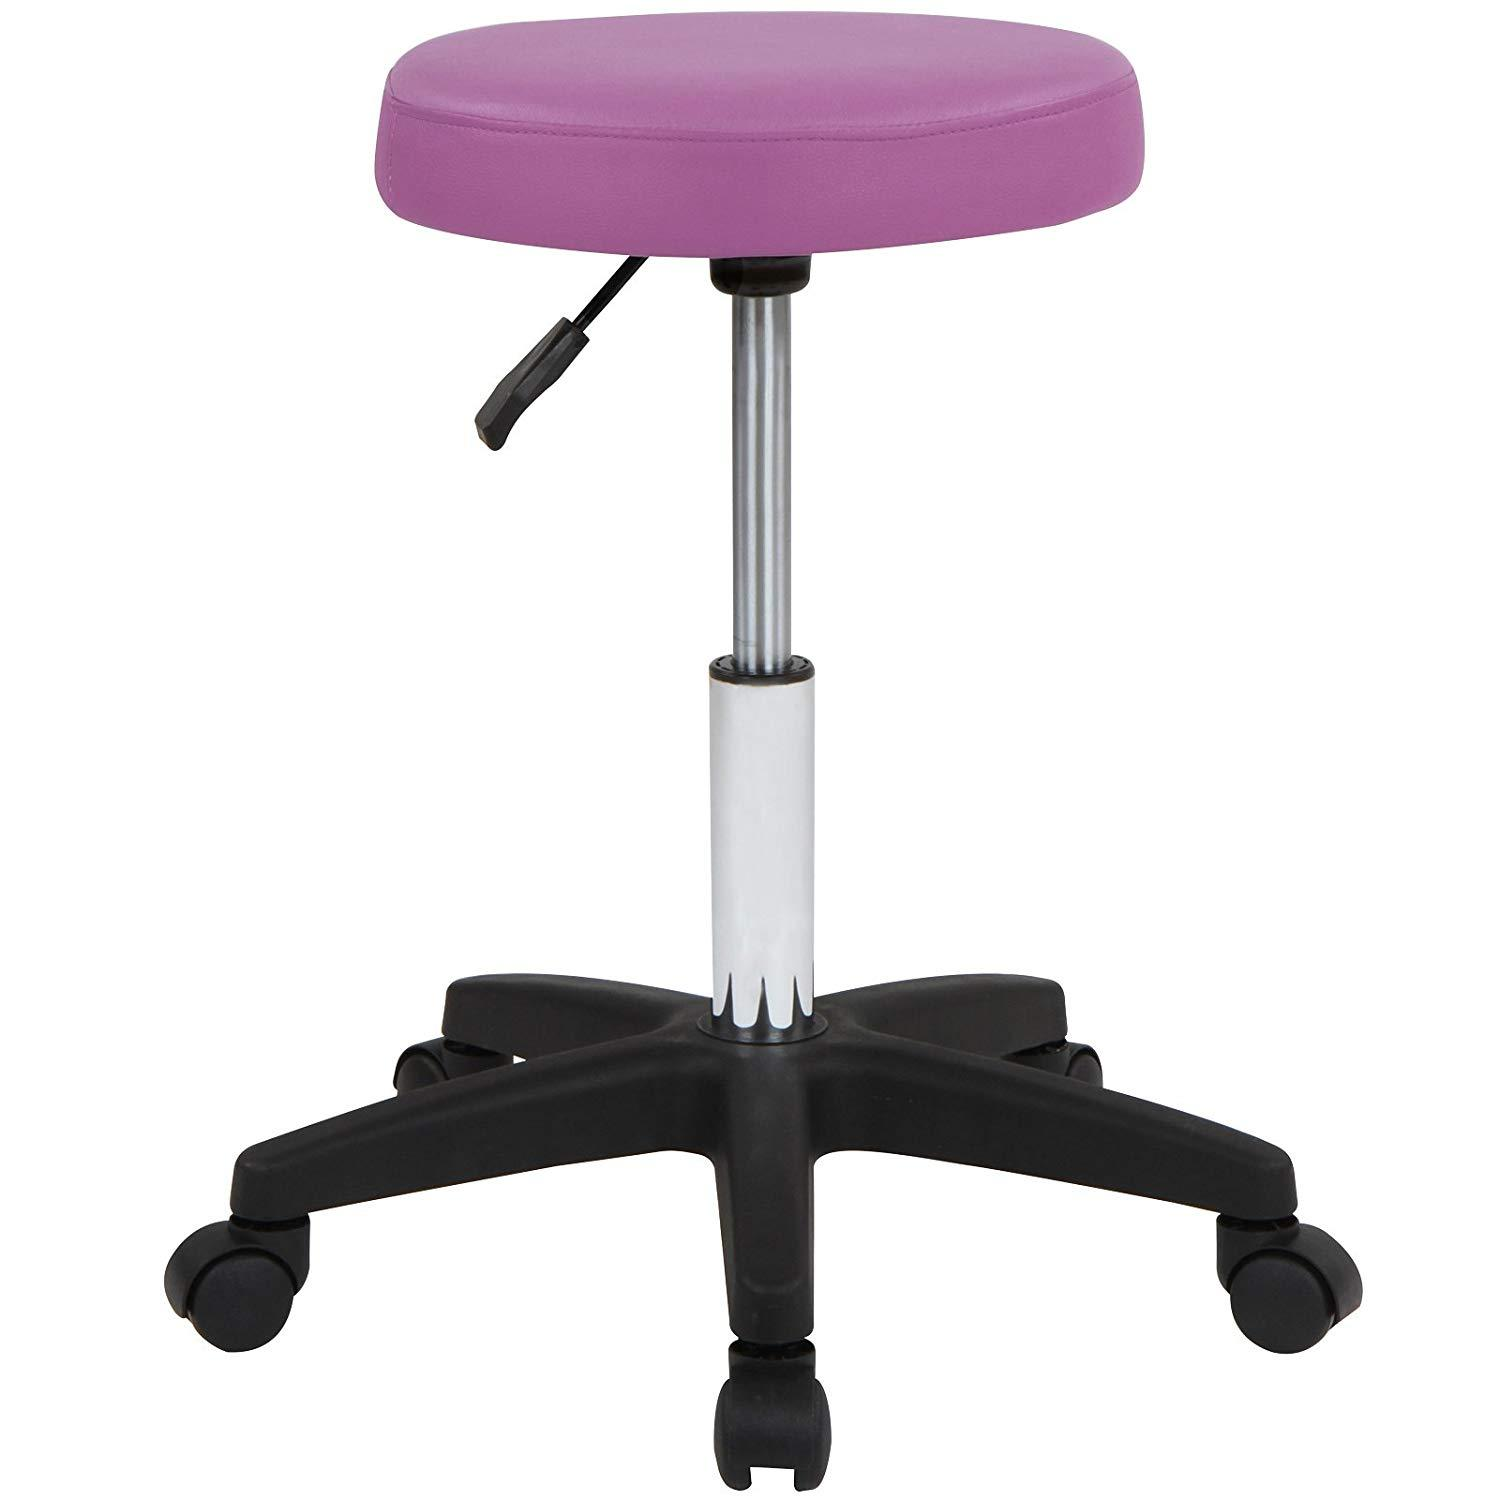 2x Cosmetic Bar Office Stool Stools Rotatable and Adjustable Purple/Lilla